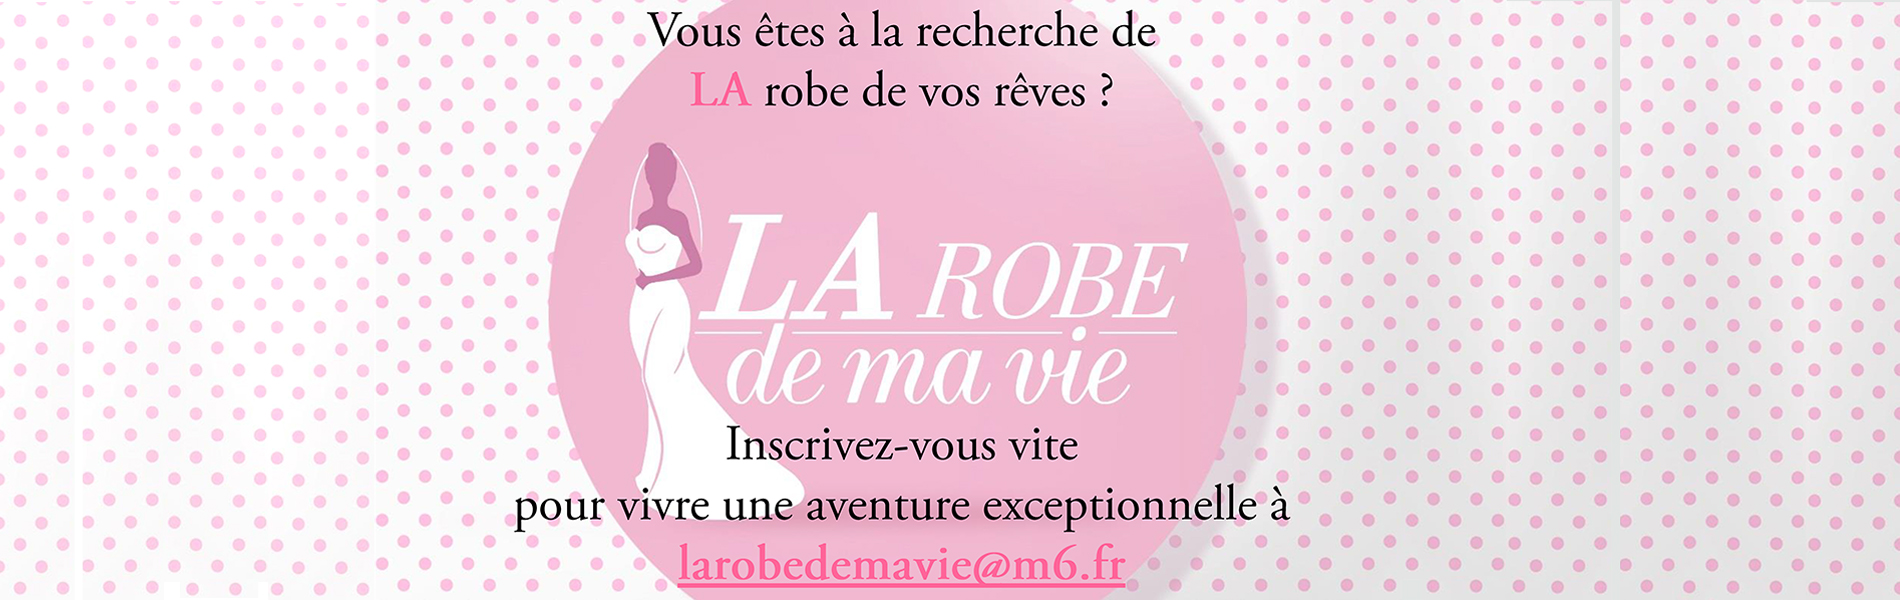 sublimefrance-mariage-m6tv-larobedemavie